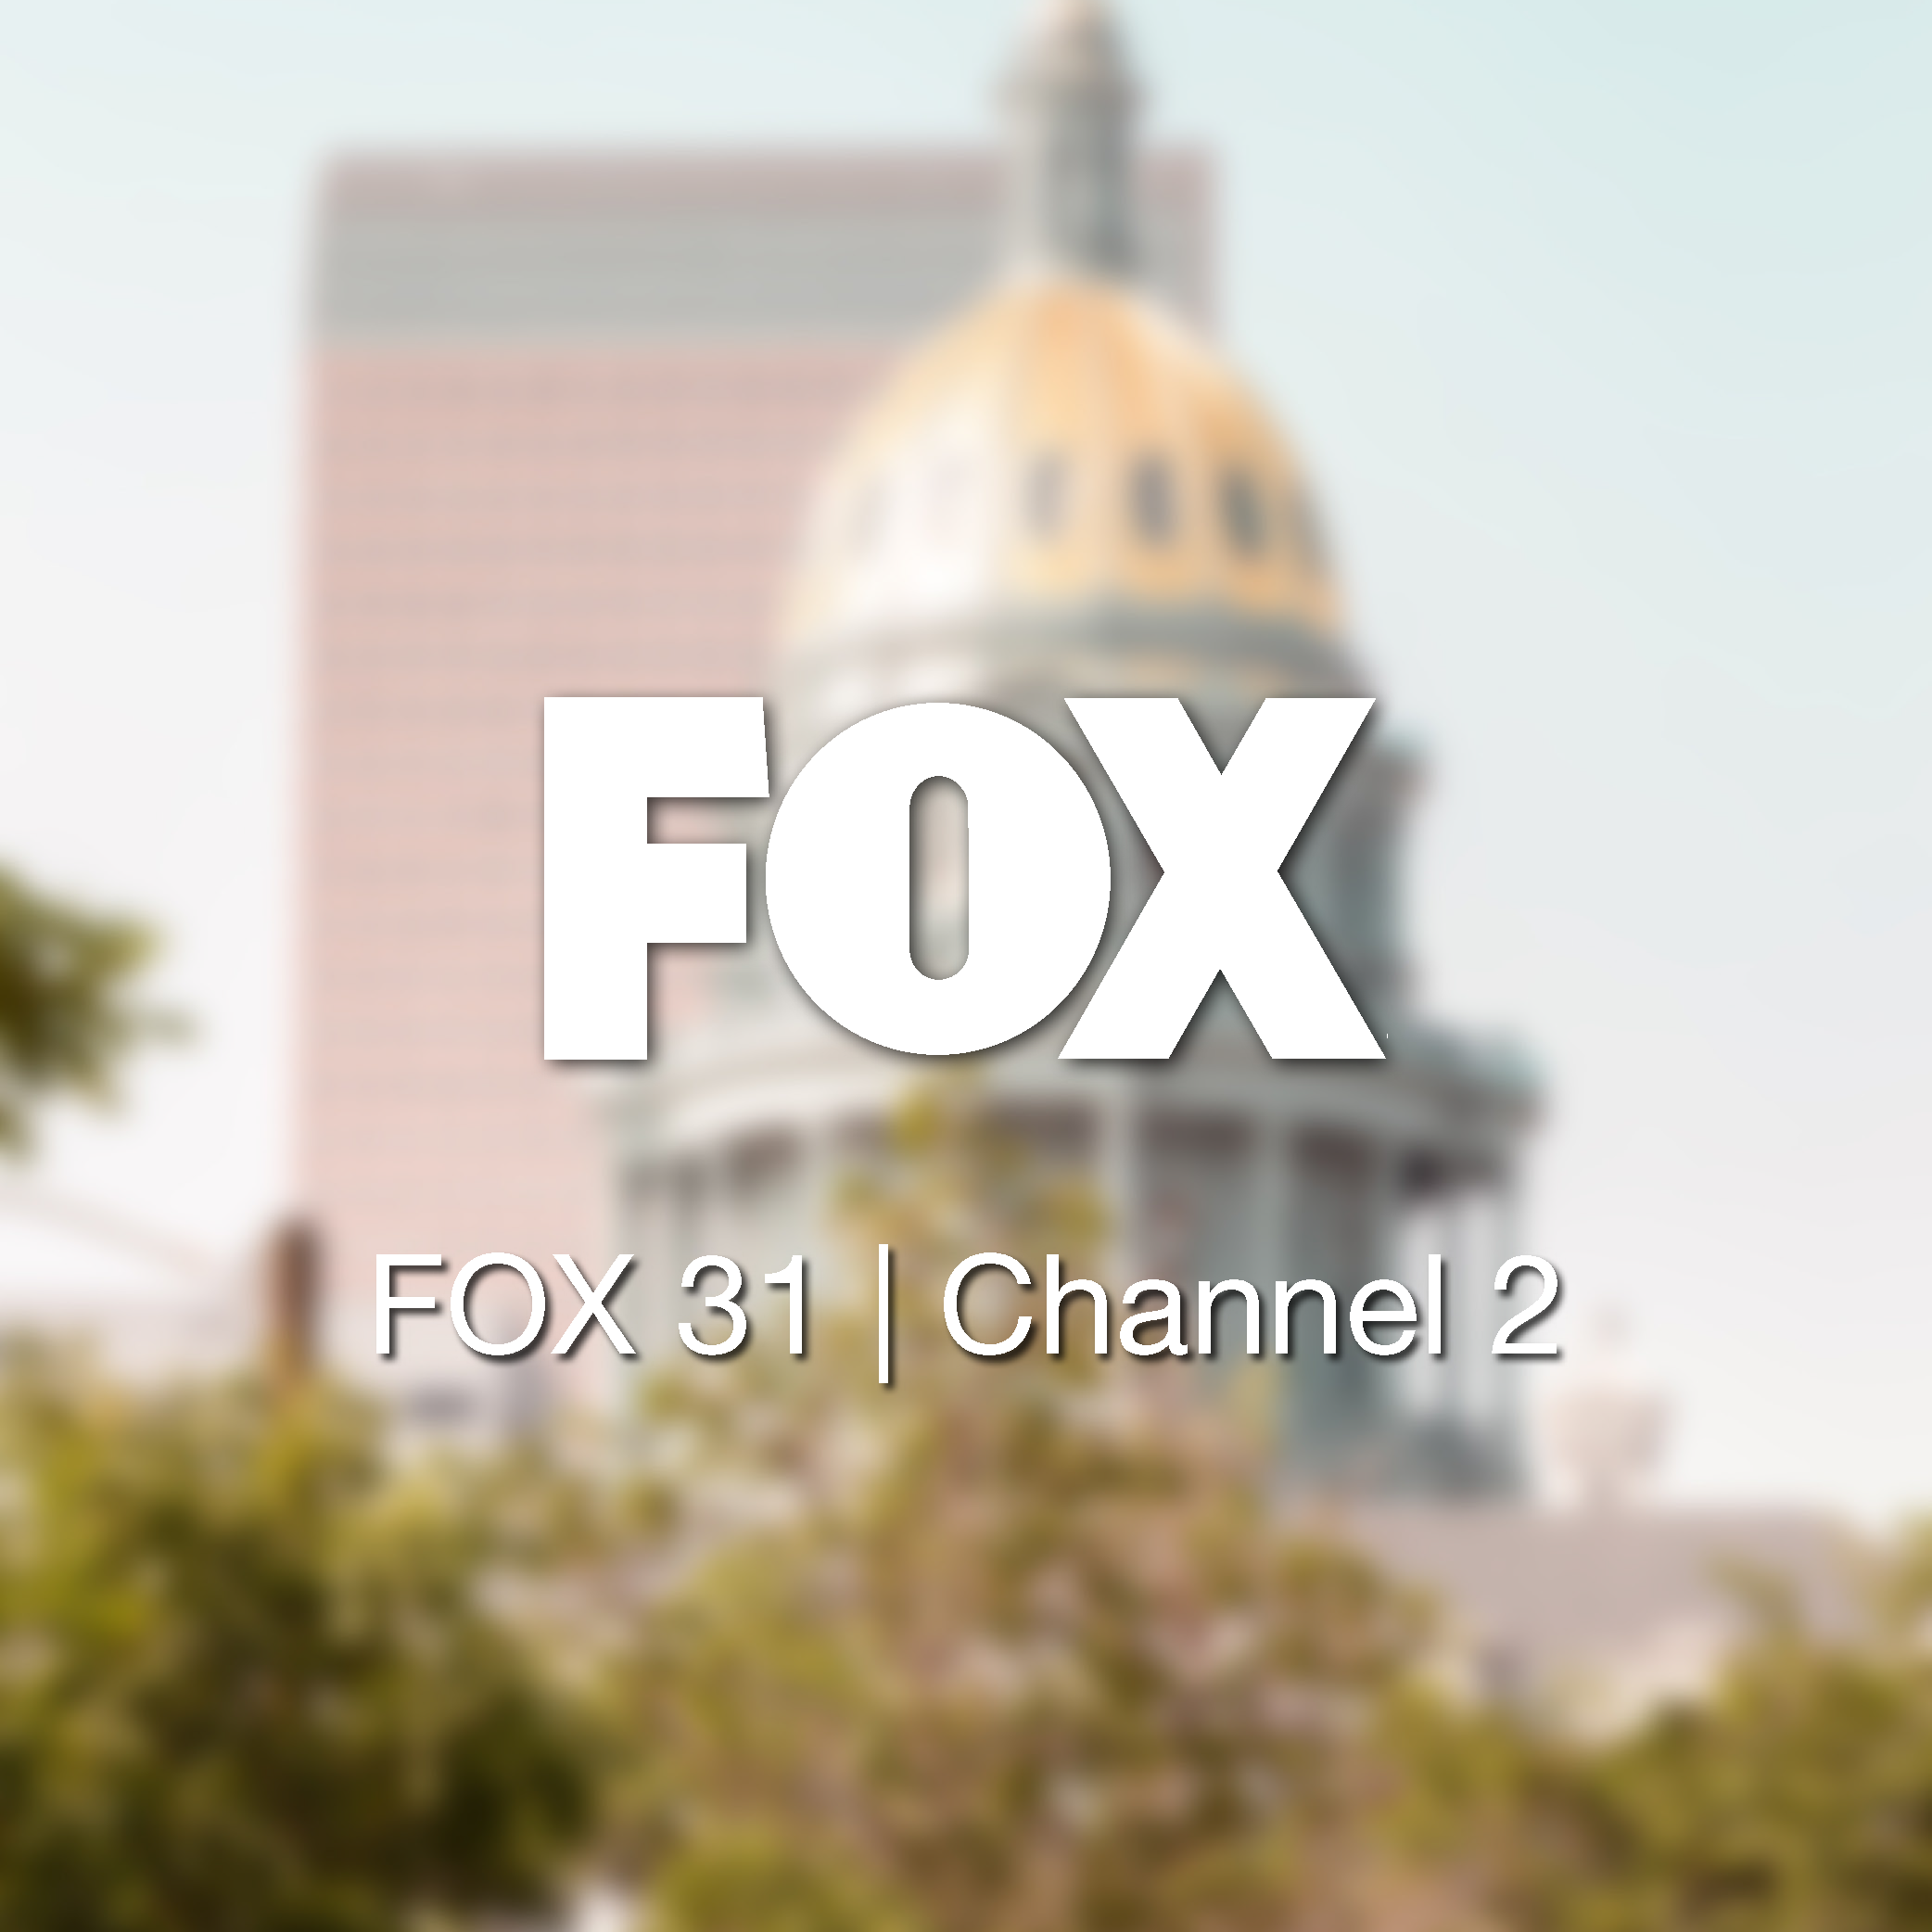 Fox 31 | Channel 2